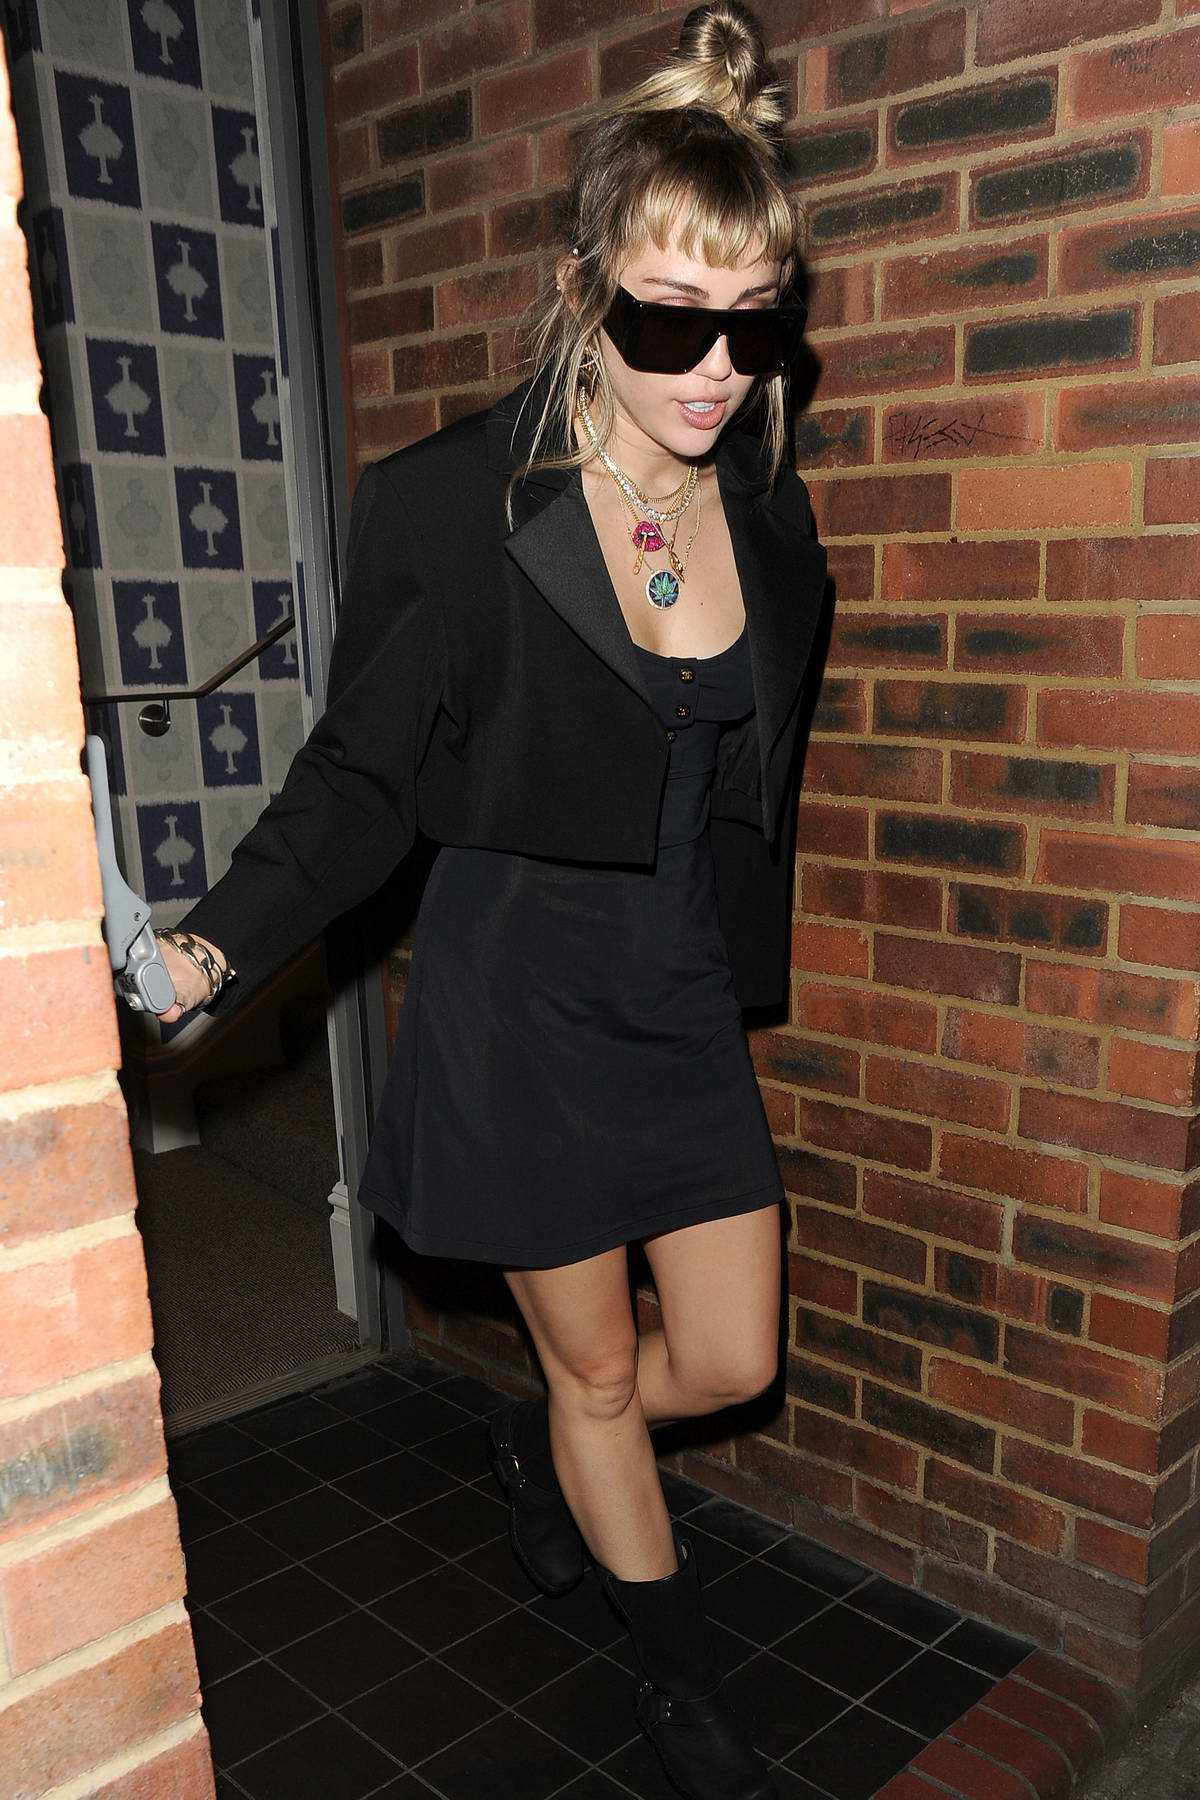 Miley Cyrus rocks a pair of cool shades with an all-black ensemble as she leaves the Soho Hotel in London, UK